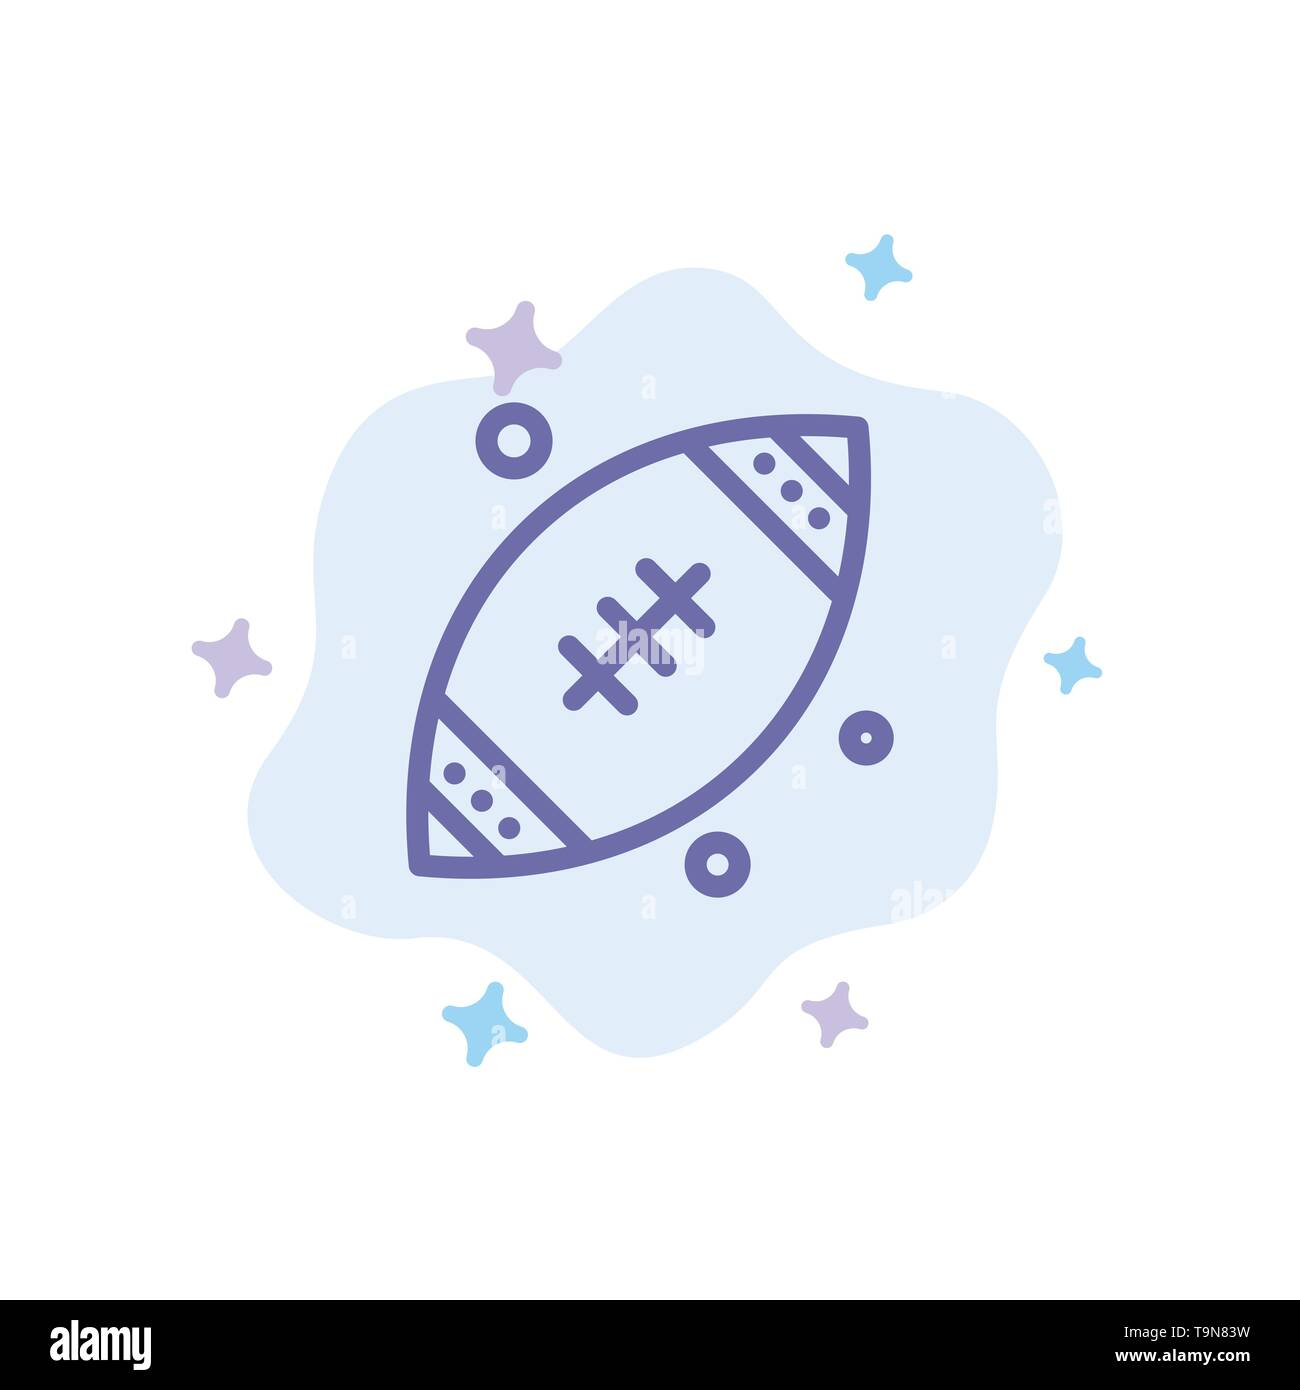 Ball, Rugby, Sports, Ireland Blue Icon on Abstract Cloud Background - Stock Image